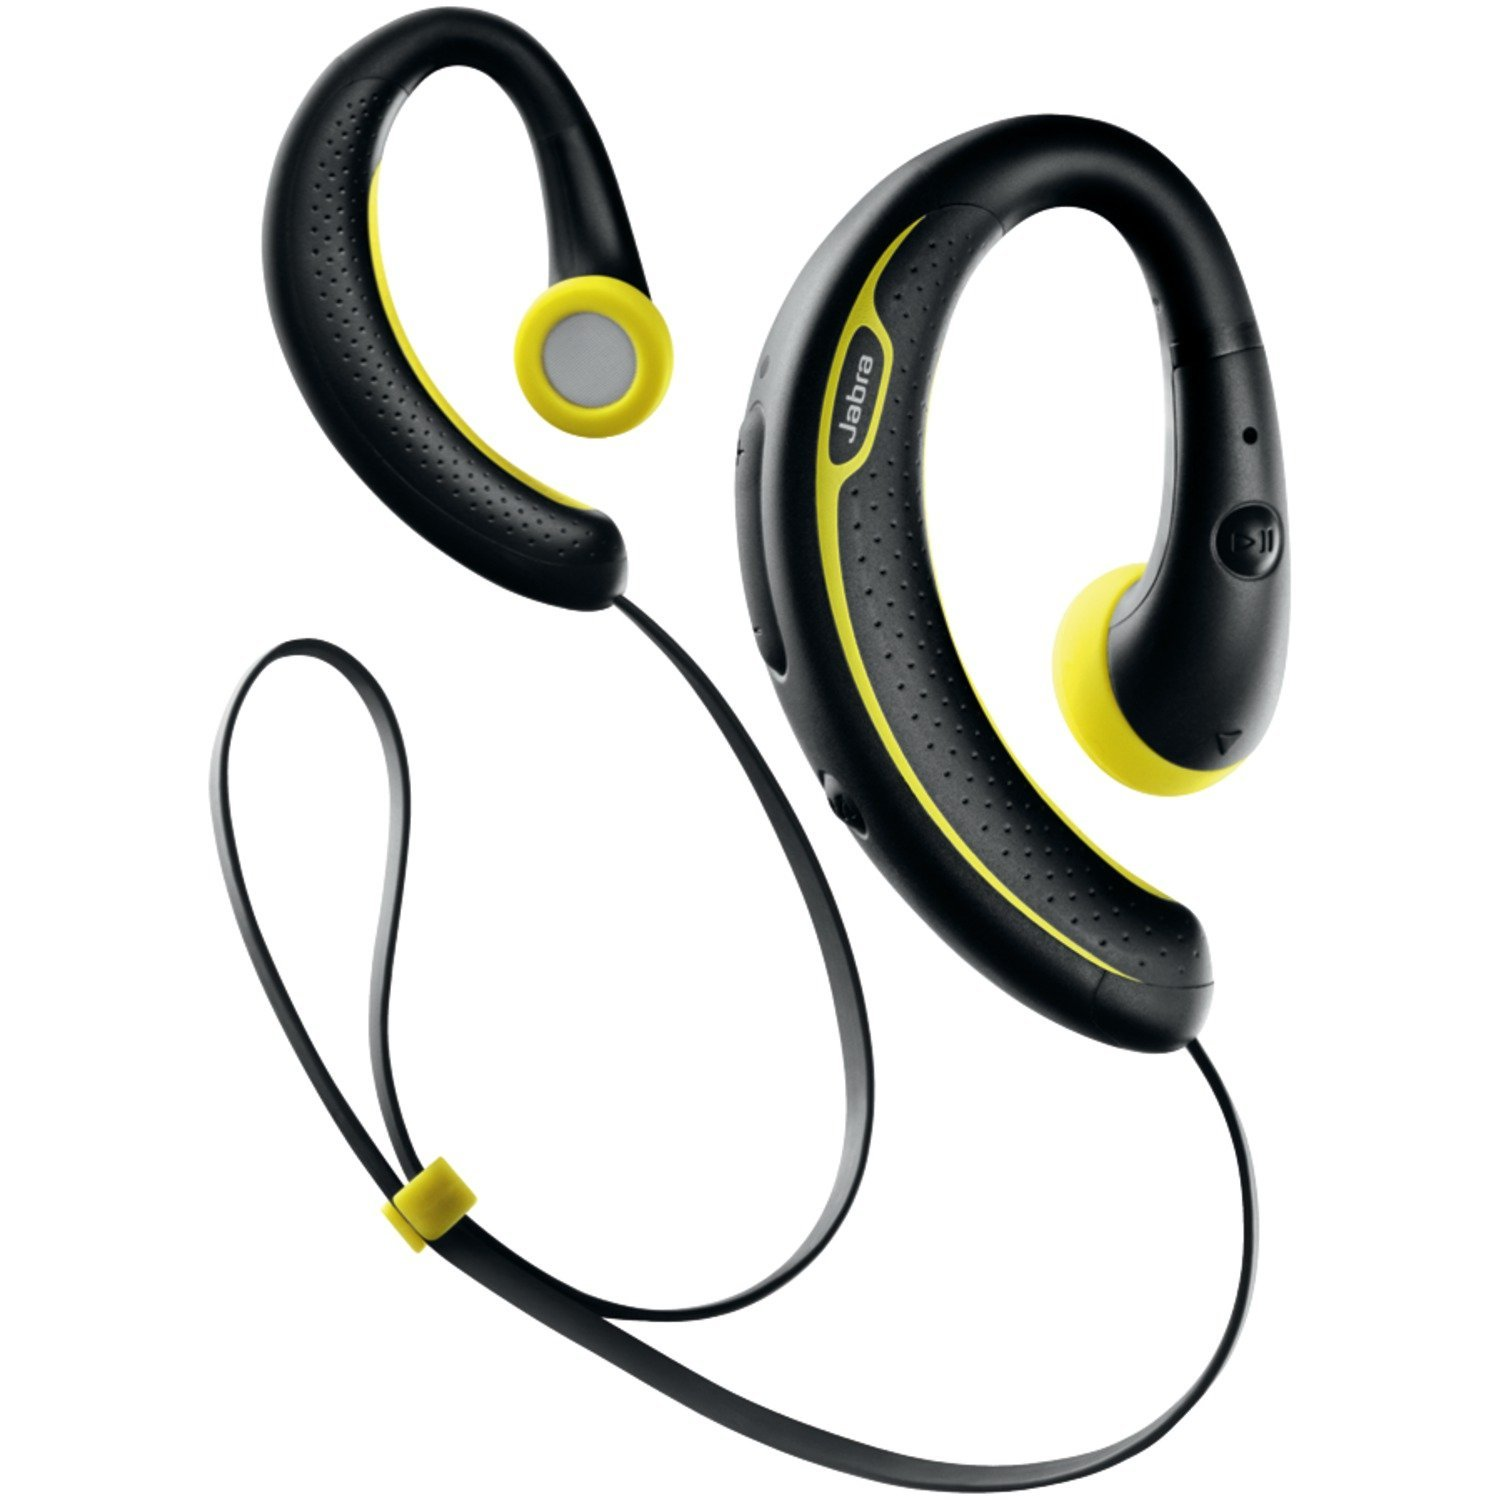 Jabra SPORT+ Wireless Bluetooth Stereo Headphones - Retail Packaging - Black and Yellow